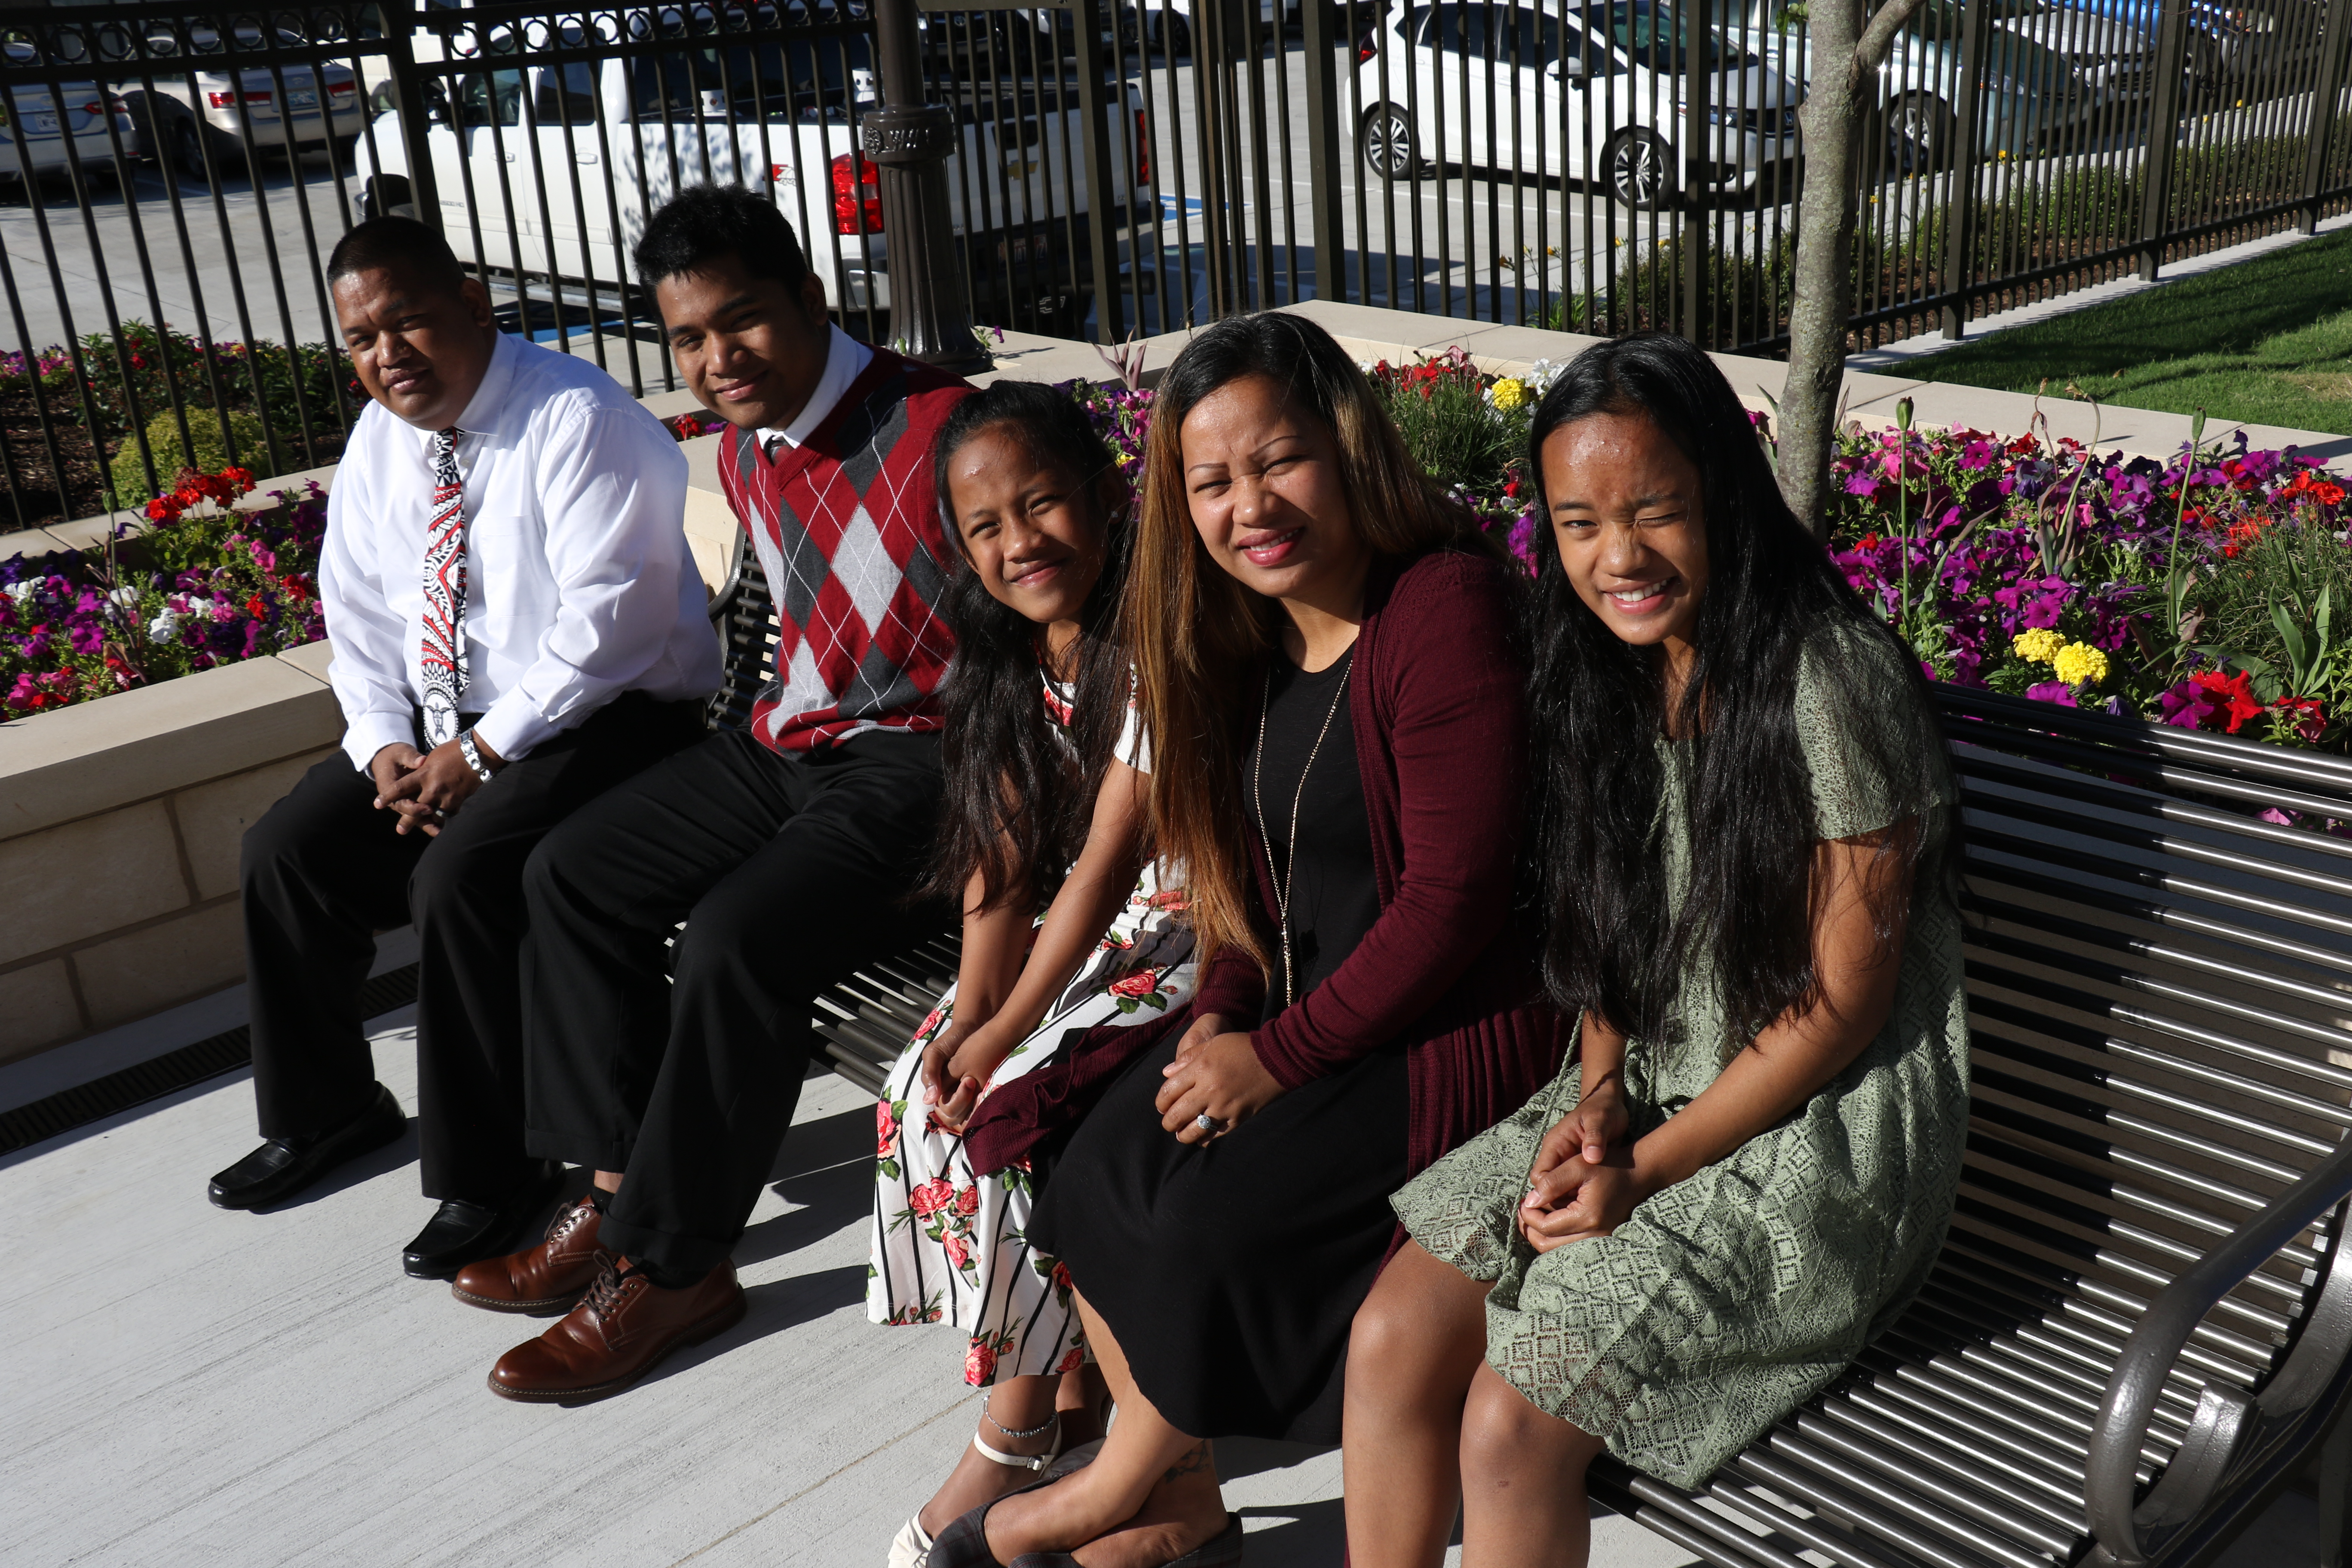 The Alonso Family from Springdale, Arkansas, enjoy the grounds outside the Oklahoma City Oklahoma Temple.